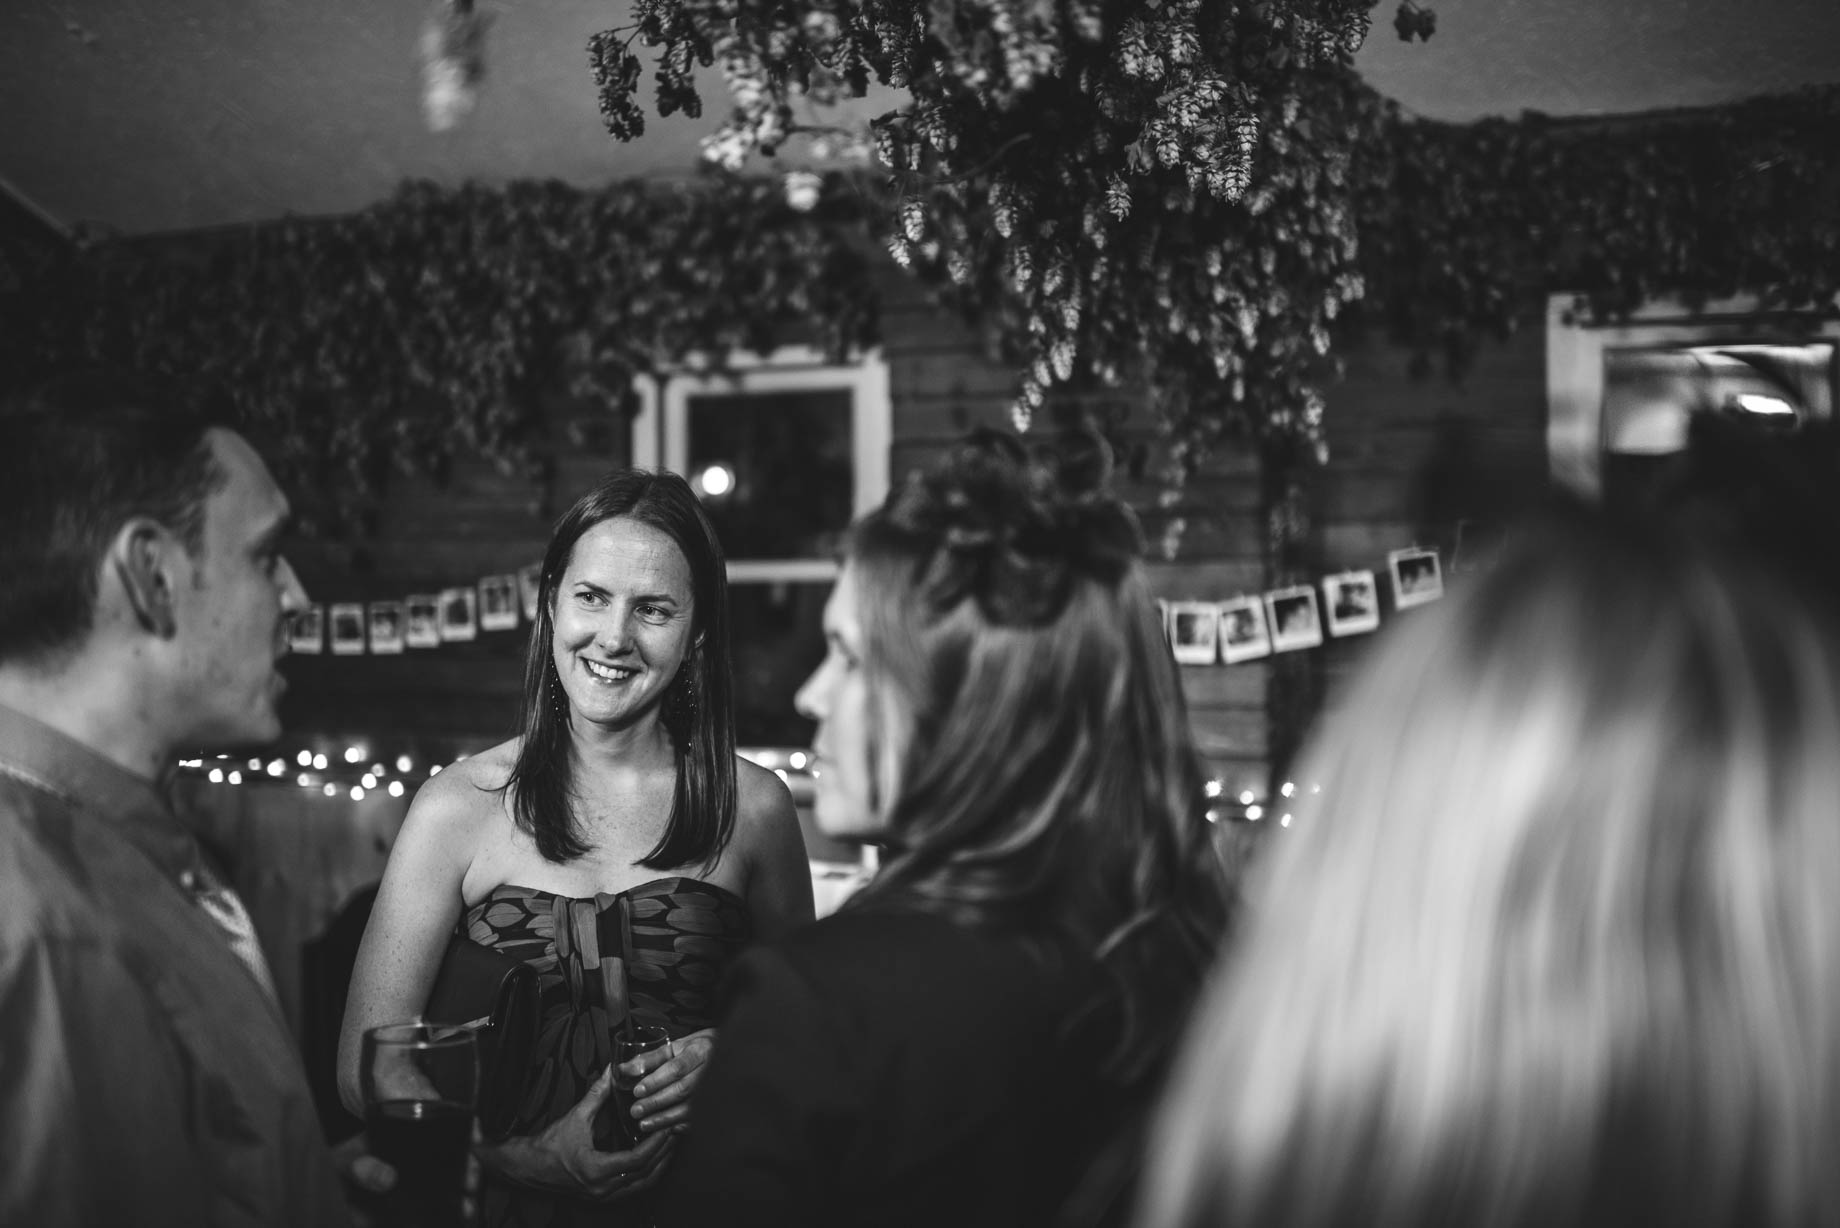 Gate Street Barn wedding photography - Guy Collier - Claire and Andy (178 of 192)